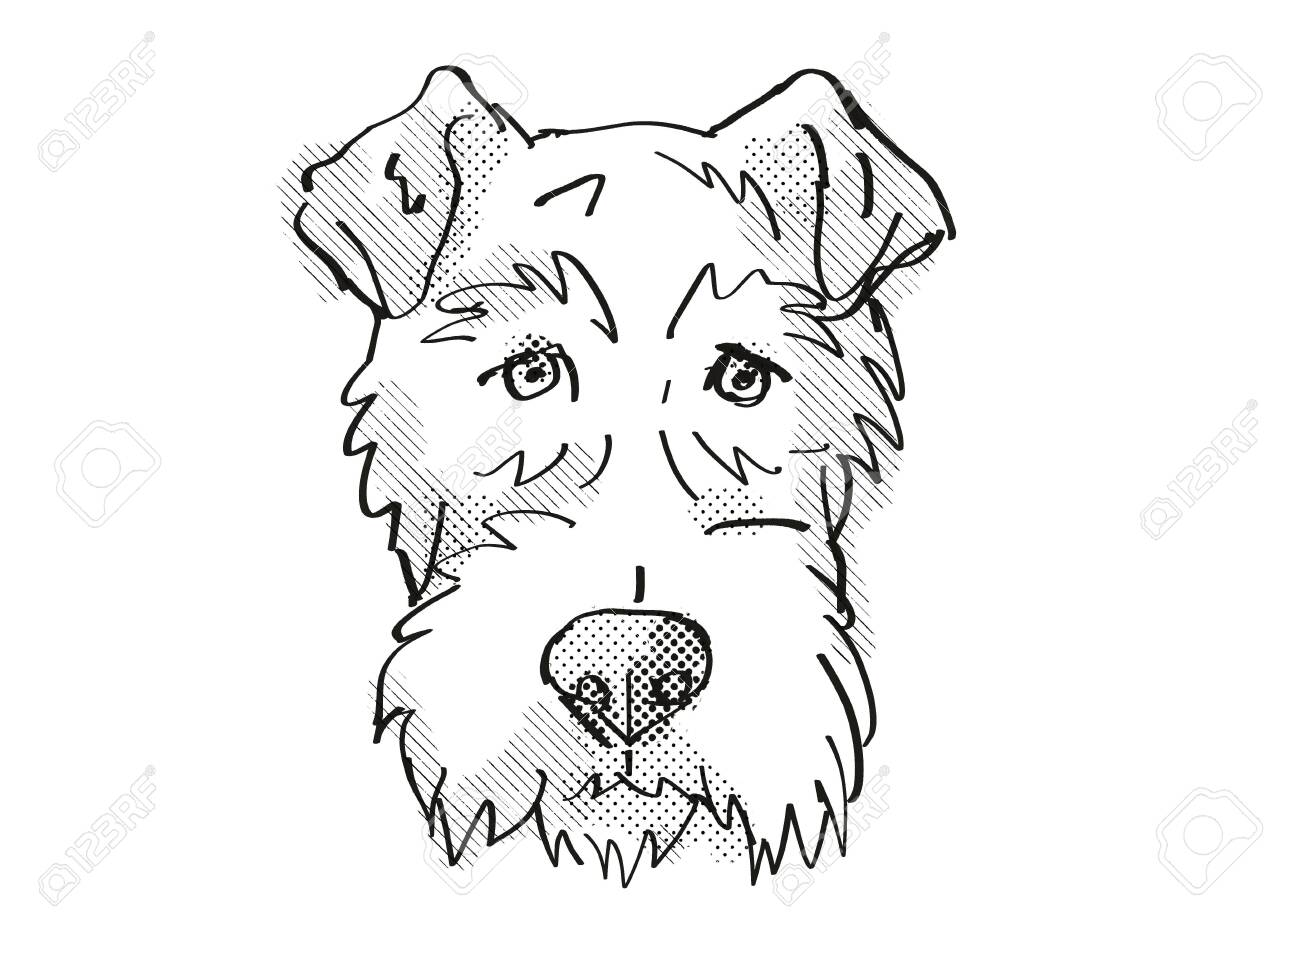 Retro Cartoon Style Drawing Of Head Of A Fox Terrier A Domestic